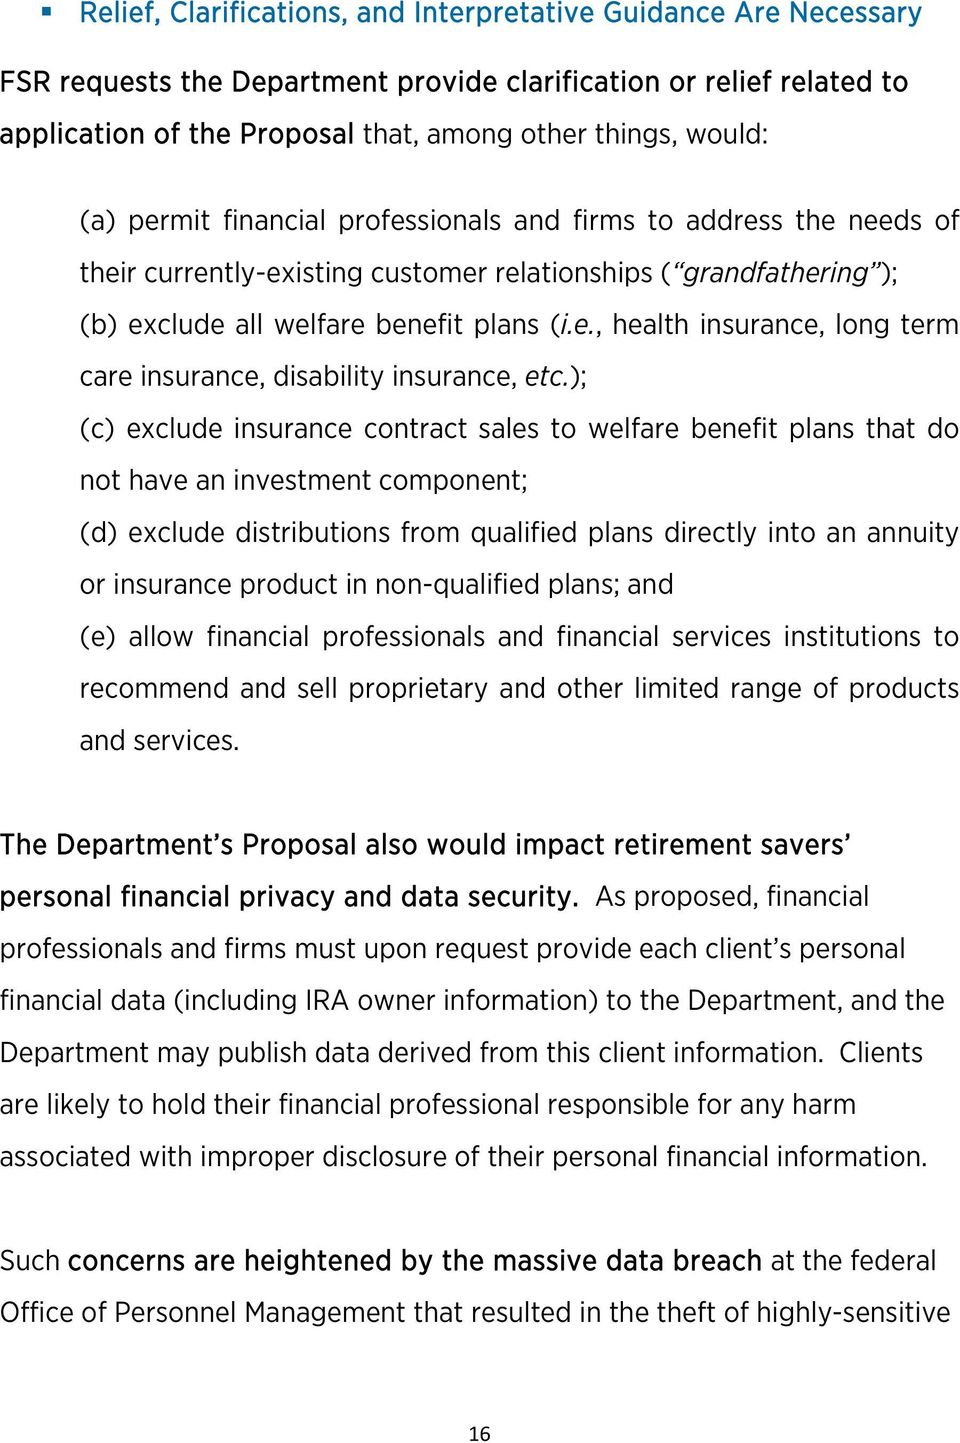 ); (c) exclude insurance contract sales to welfare benefit plans that do not have an investment component; (d) exclude distributions from qualified plans directly into an annuity or insurance product